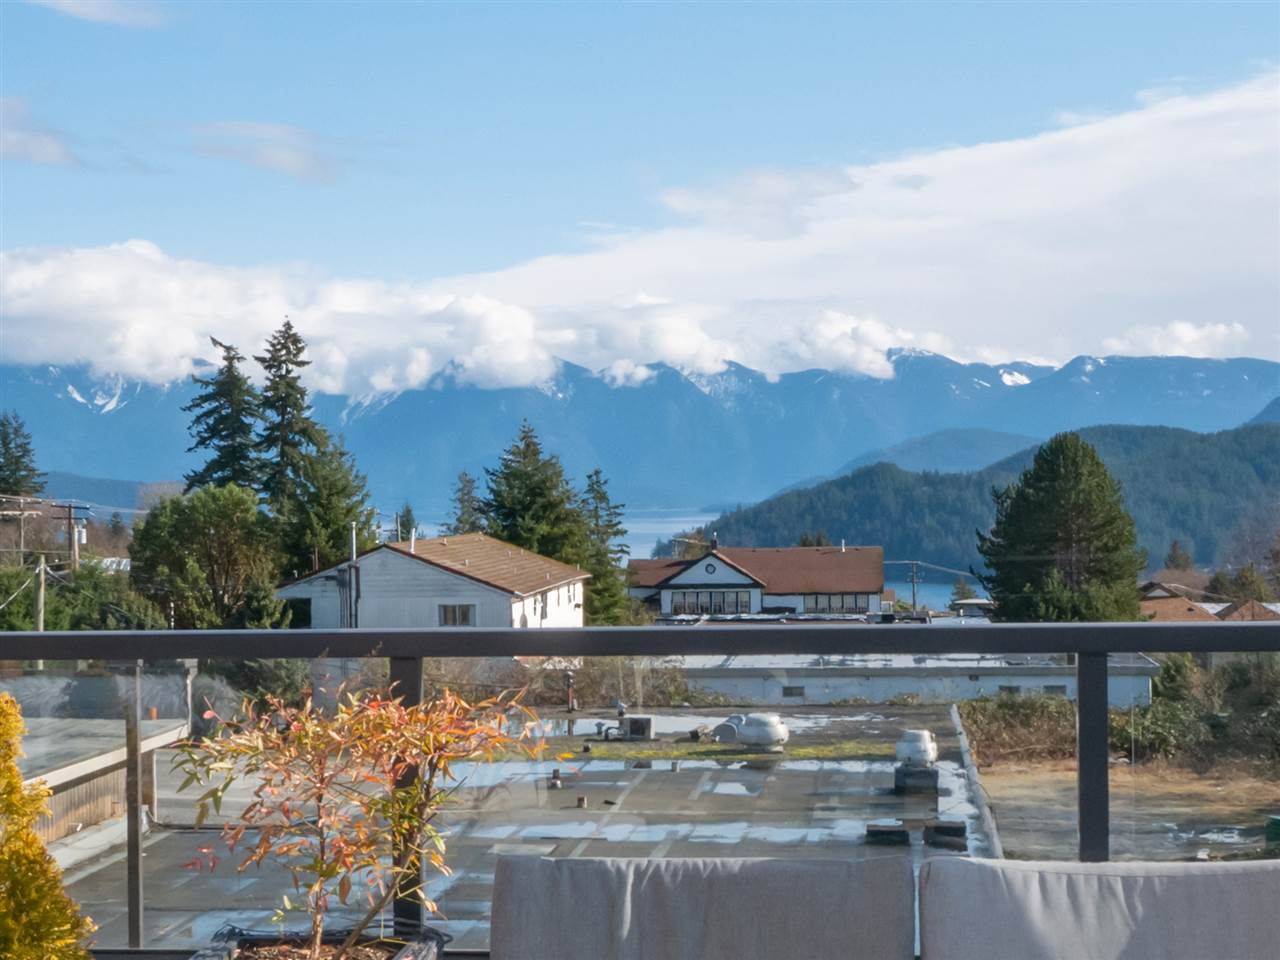 210 875 GIBSONS WAY - Gibsons & Area Apartment/Condo for sale, 2 Bedrooms (R2542139) - #2